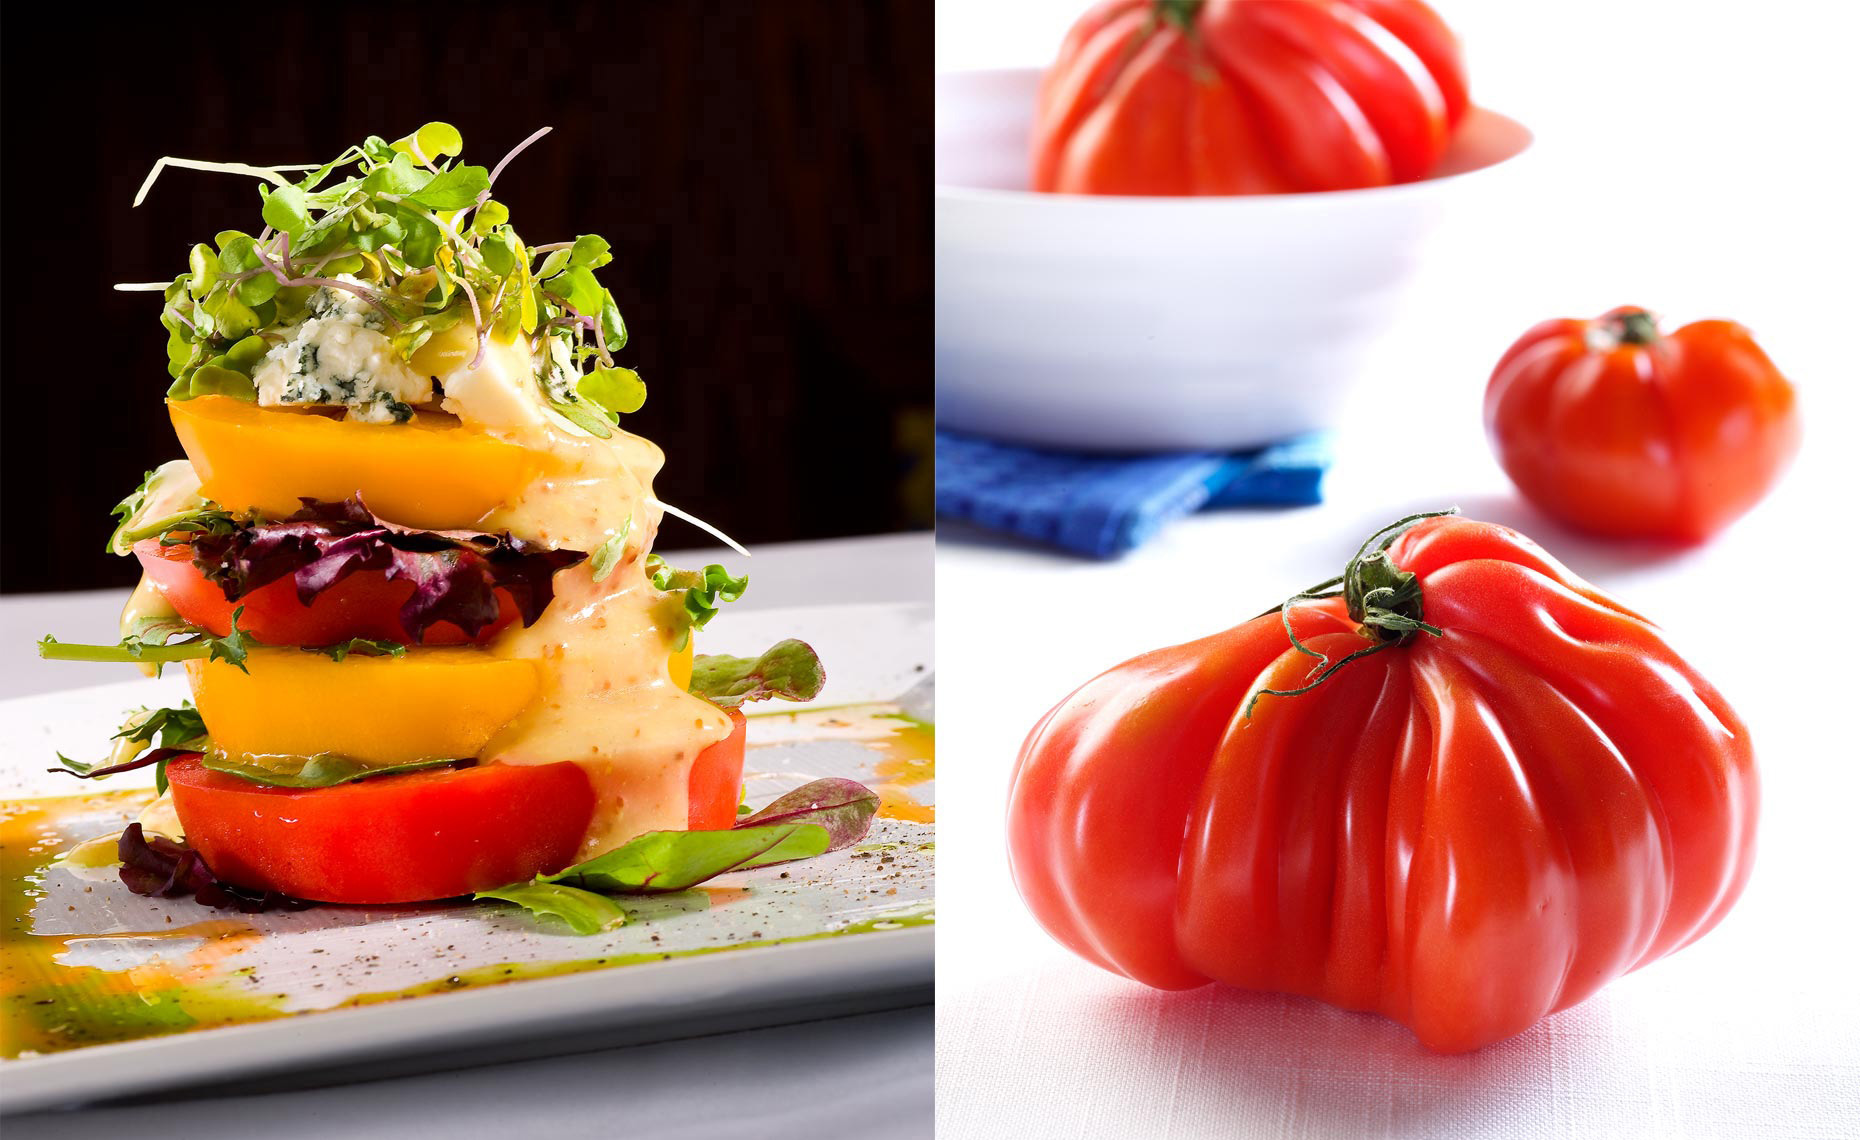 Food Photography | Tomato Stack and Ugly Tomatoes